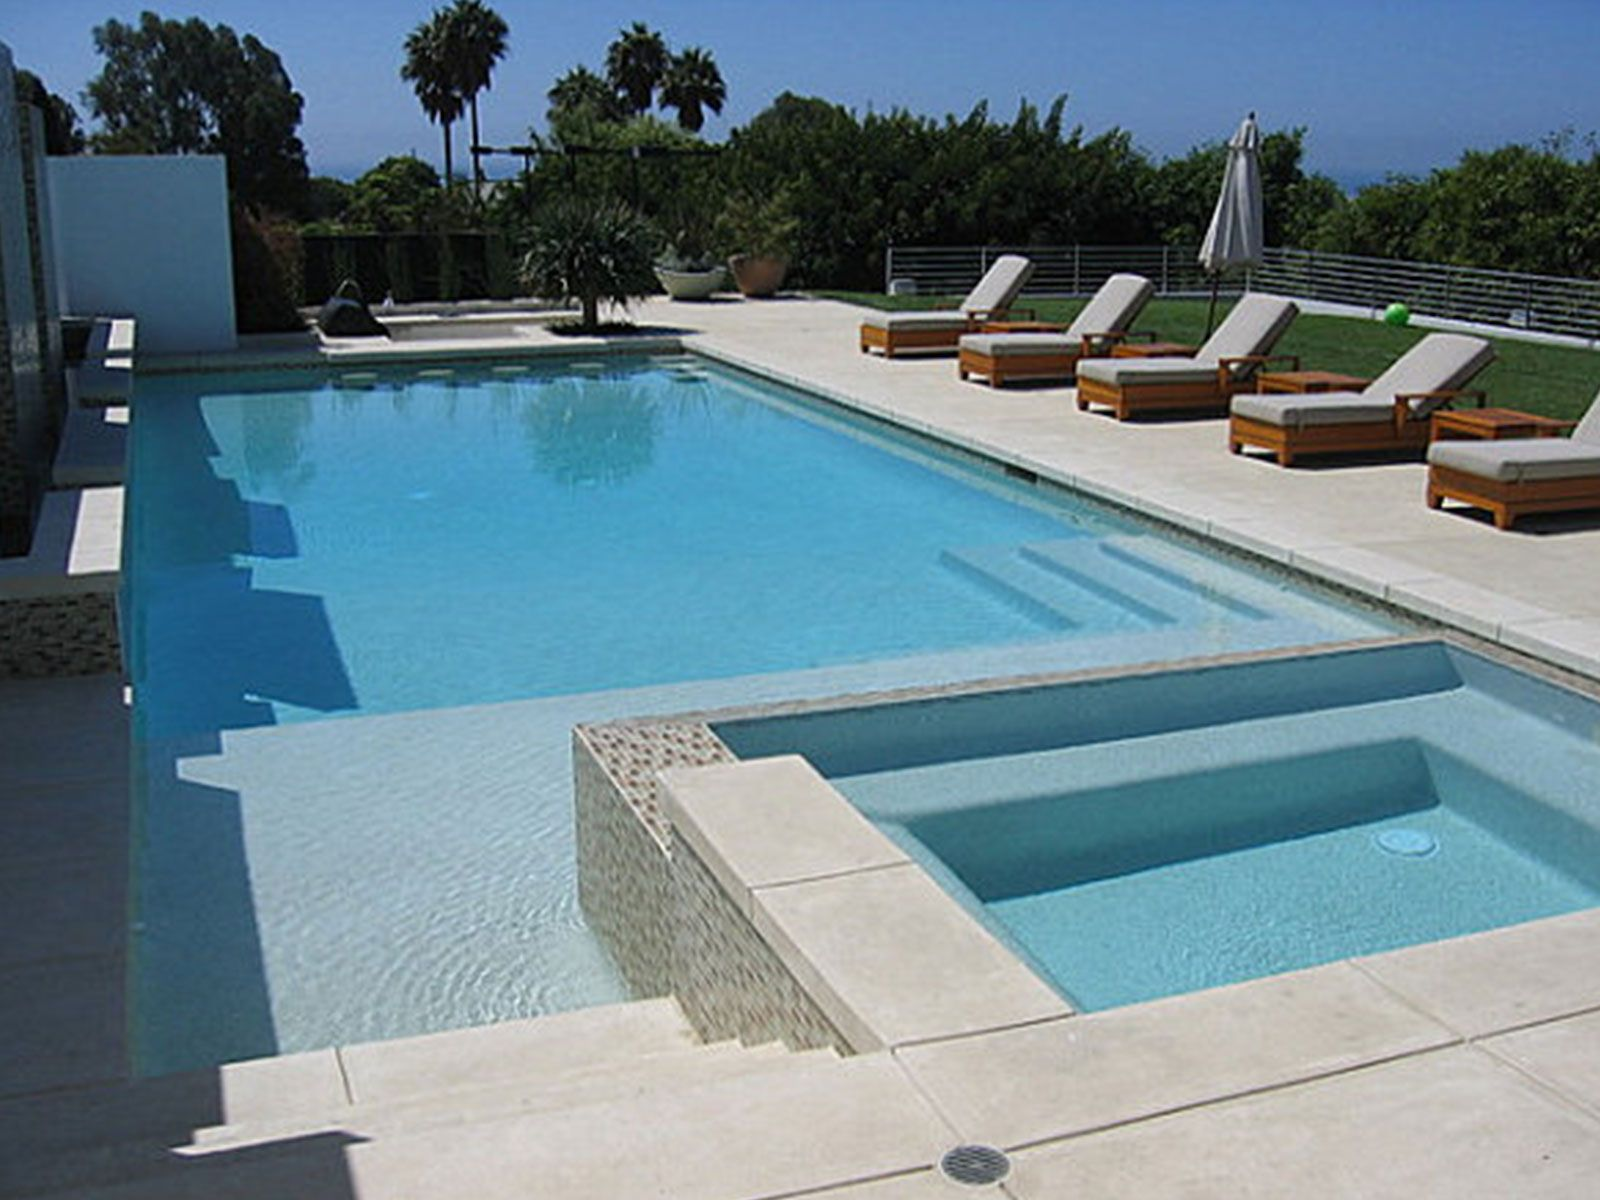 Simple swimming pool design image modern creative swimming for Modern contemporary swimming pools